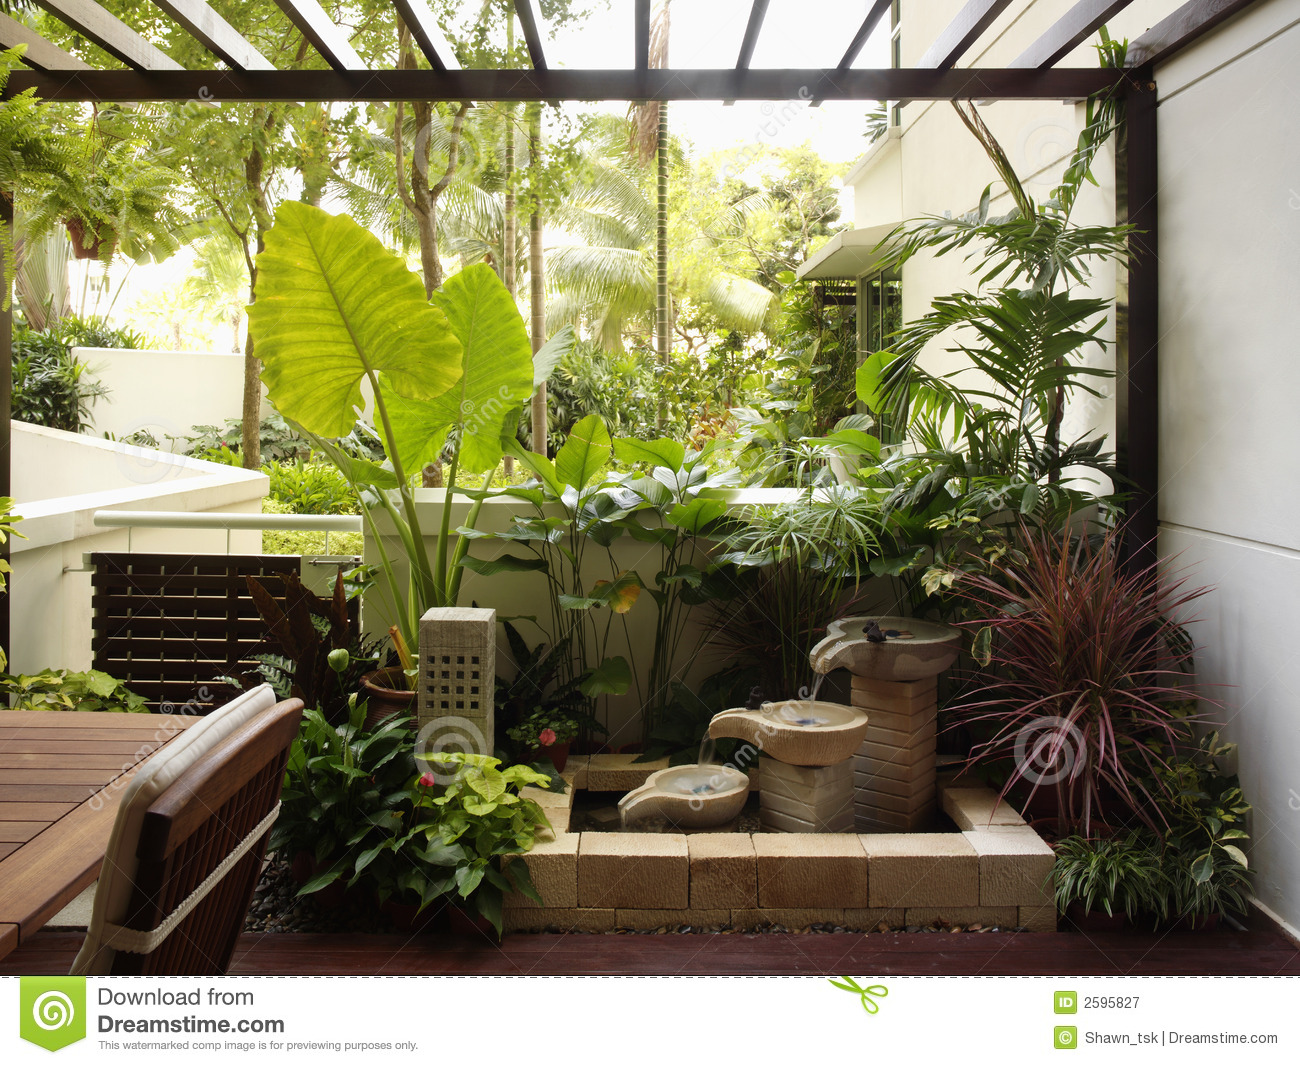 Home Decor Ideas With Plants